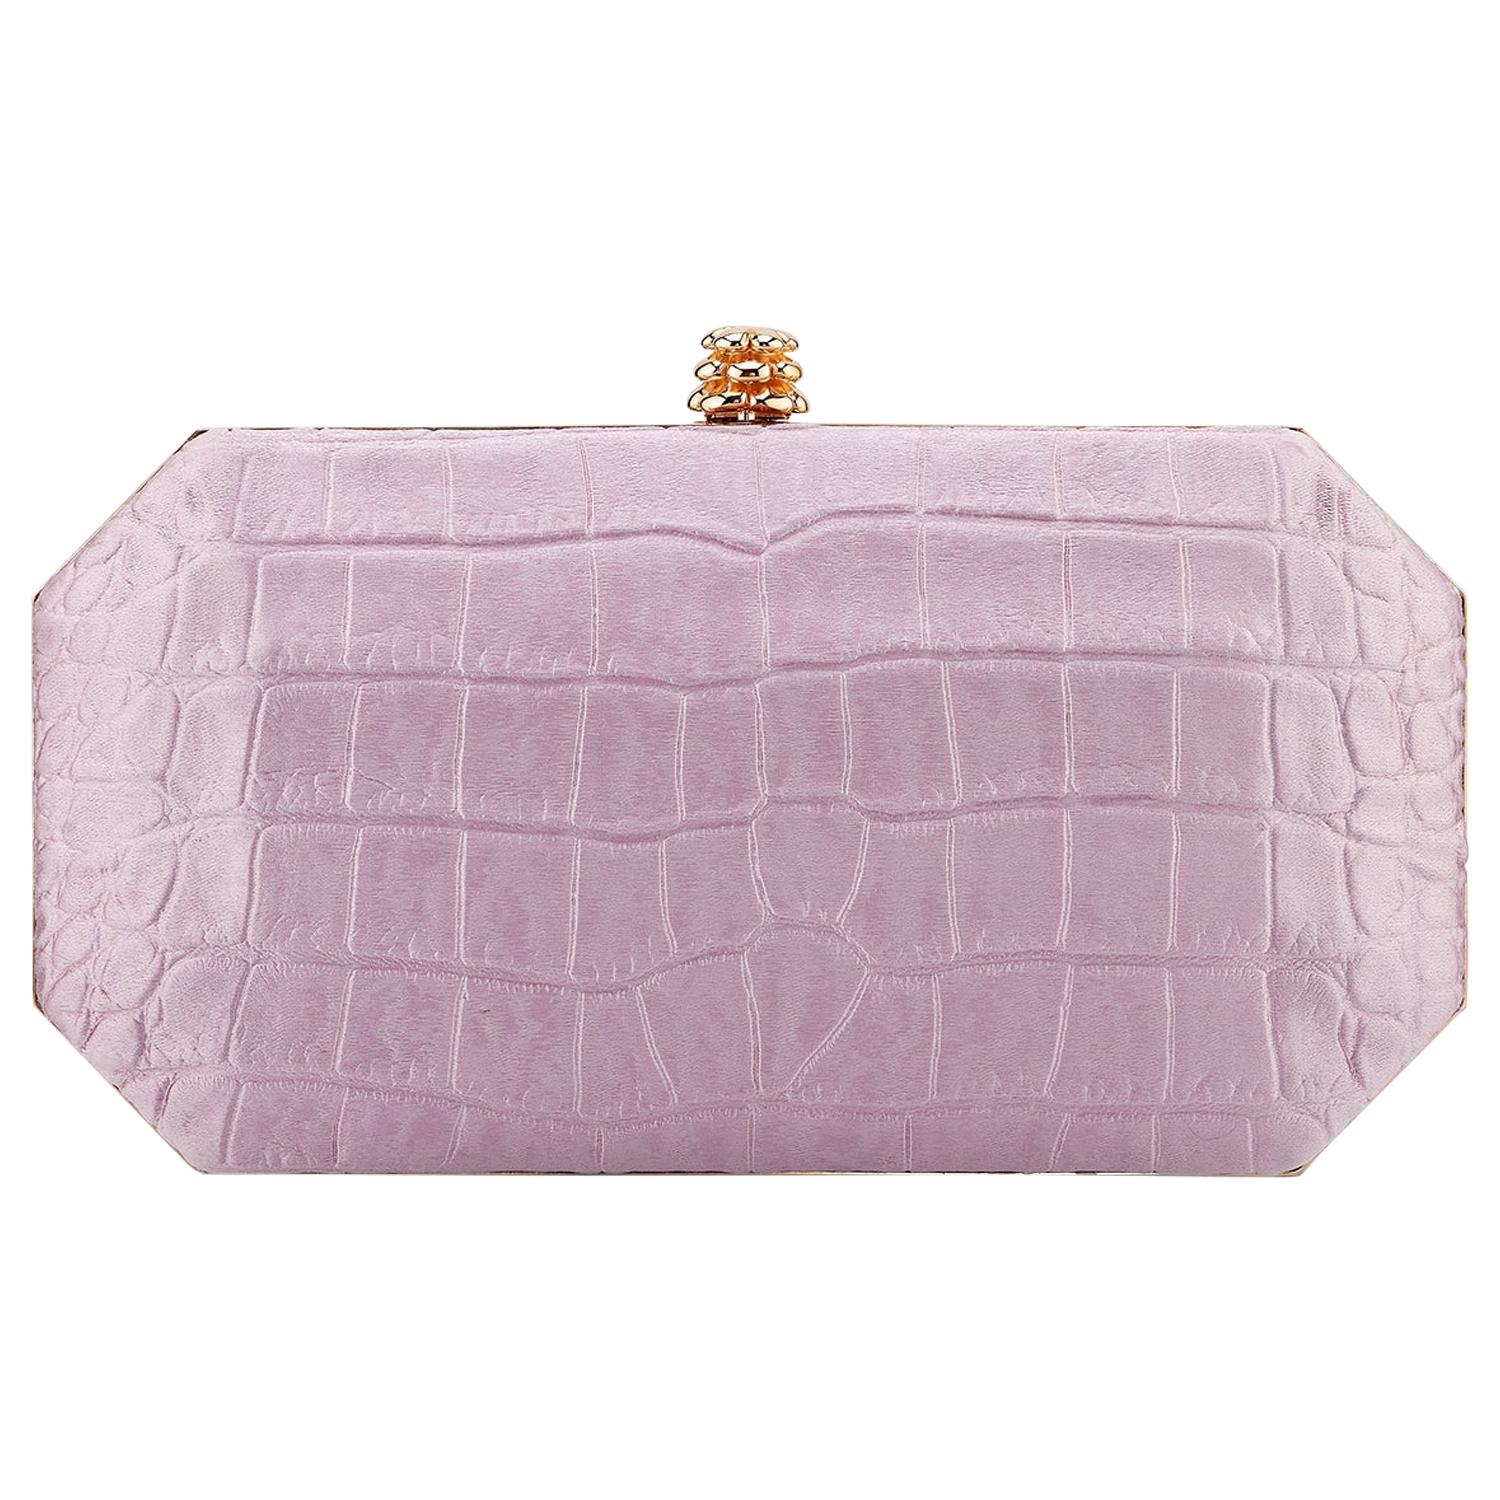 TYLER ELLIS Perry Small Clutch Antique Pink Stamped Satin Rose Gold Hardware